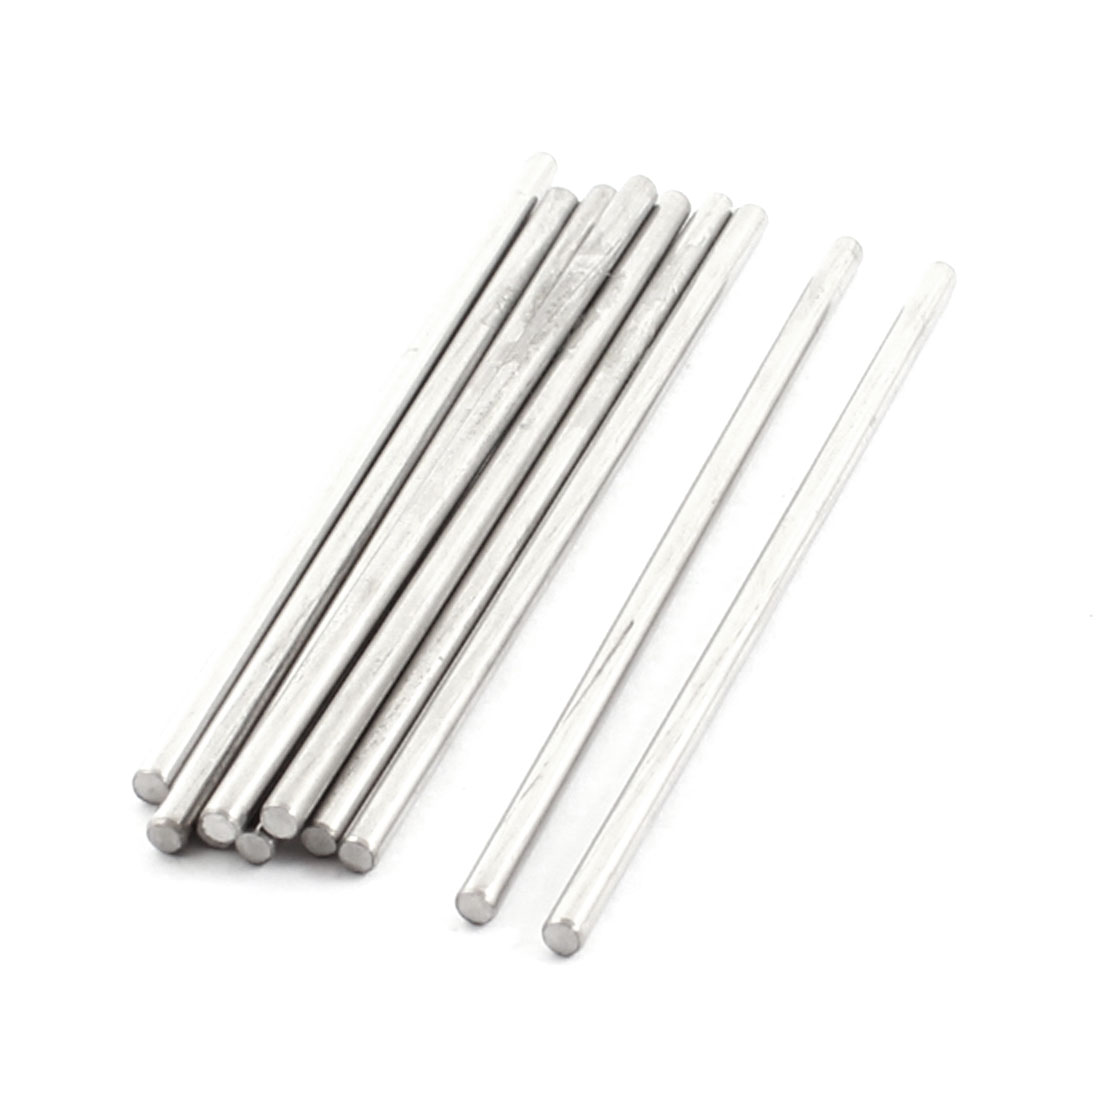 10pcs 70x2.5mm Silver Tone Stainless Steel Round Axles Shaft Rod for DIY RC Model Car